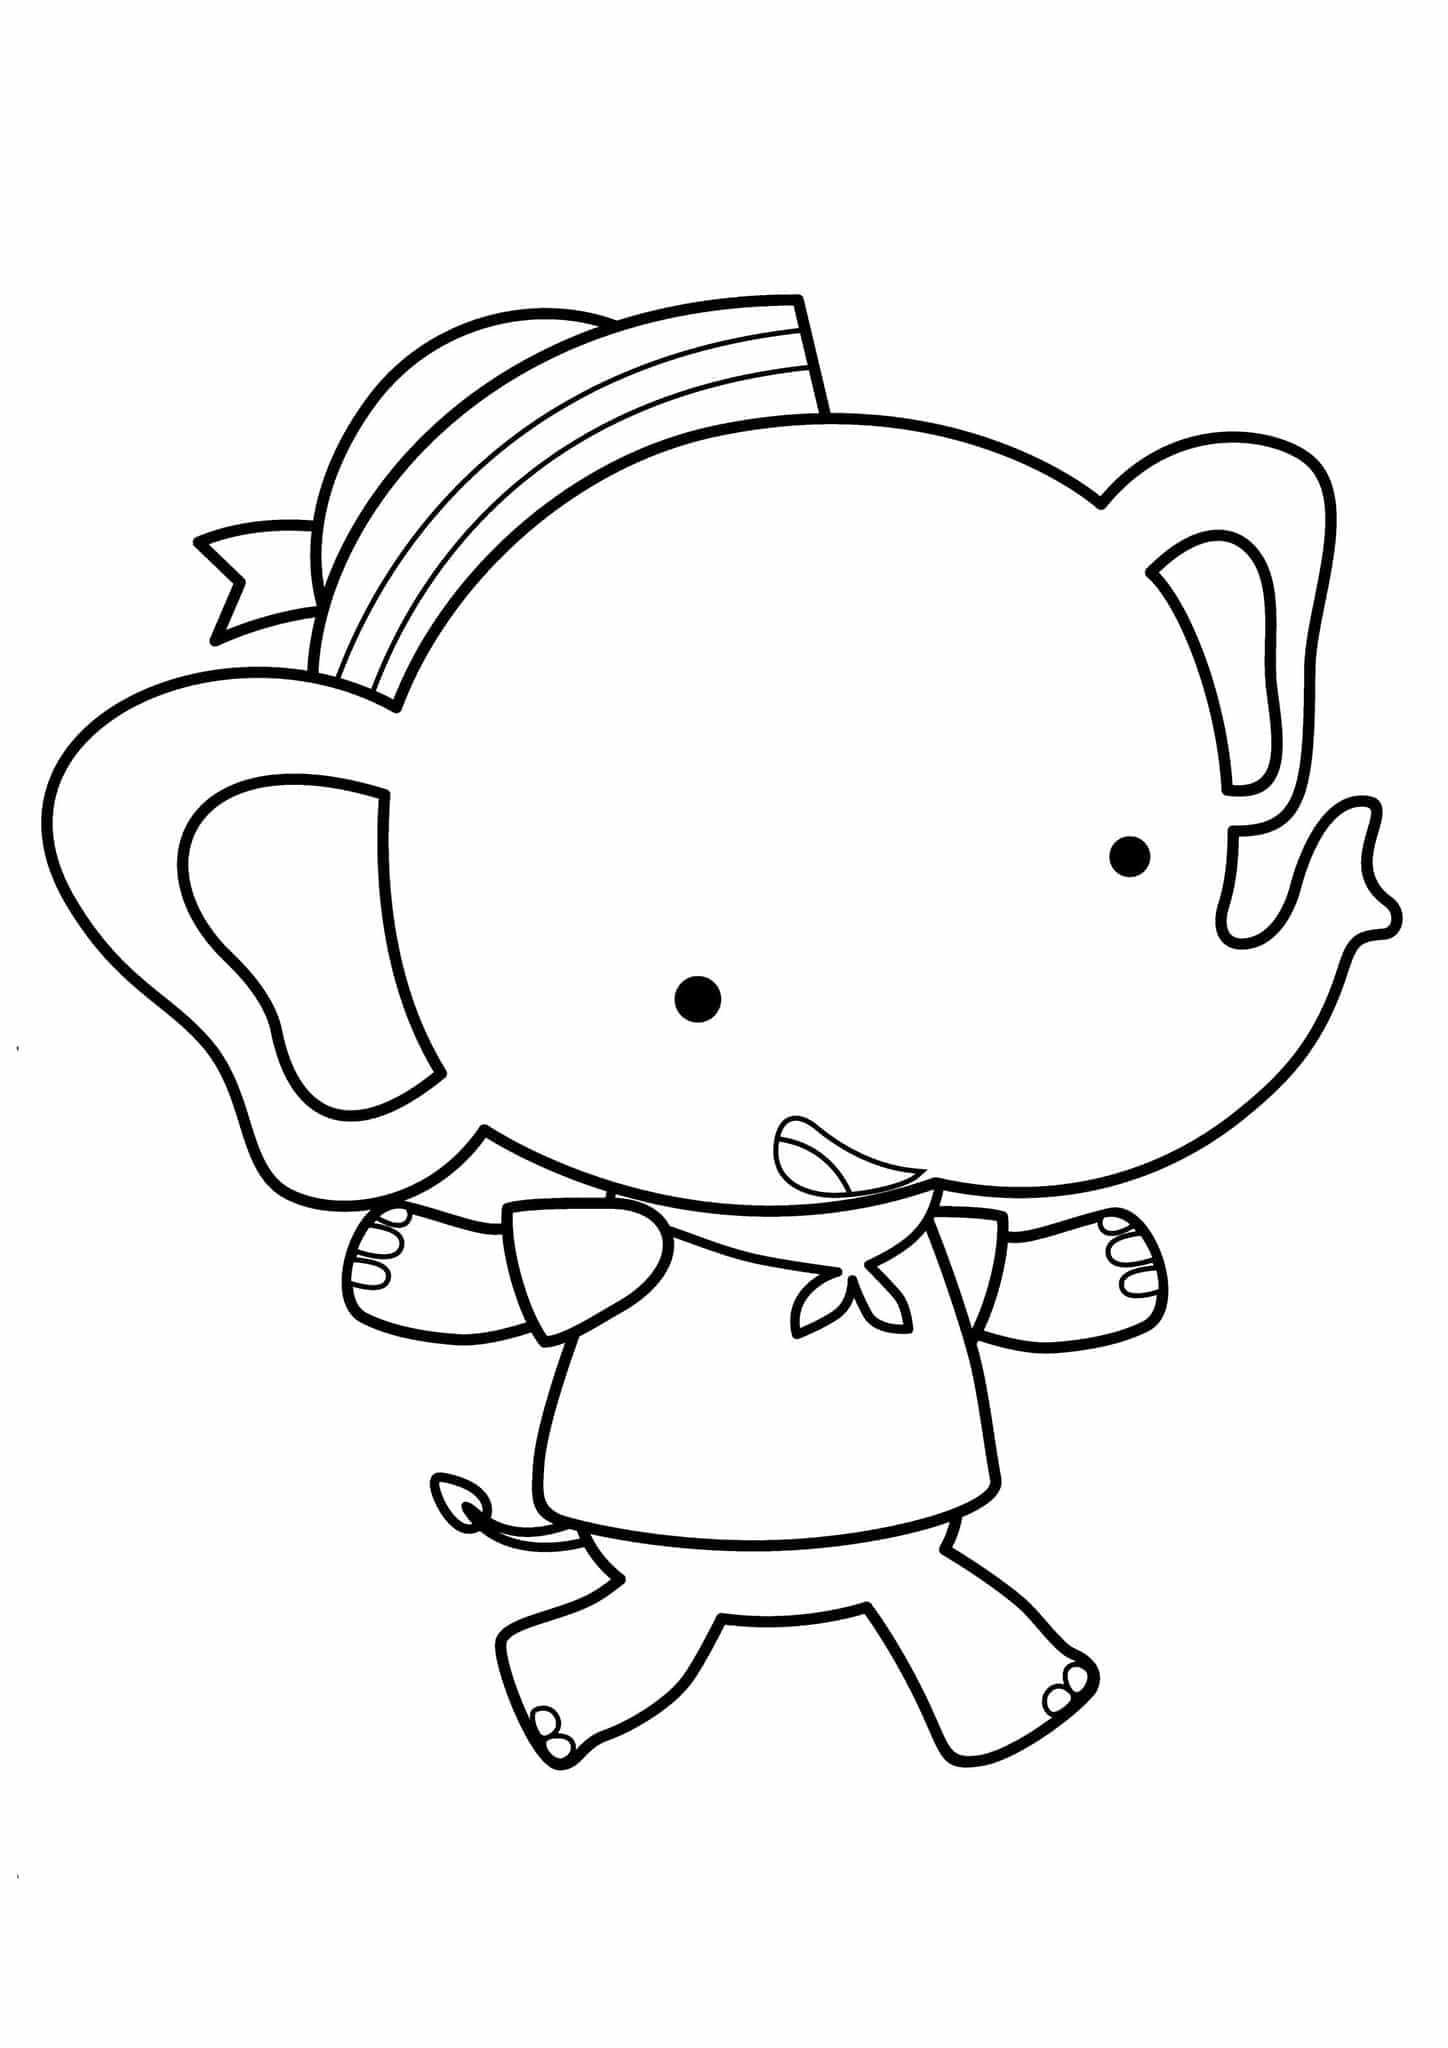 free printable elephant pictures elephants free to color for kids elephants kids coloring printable free pictures elephant